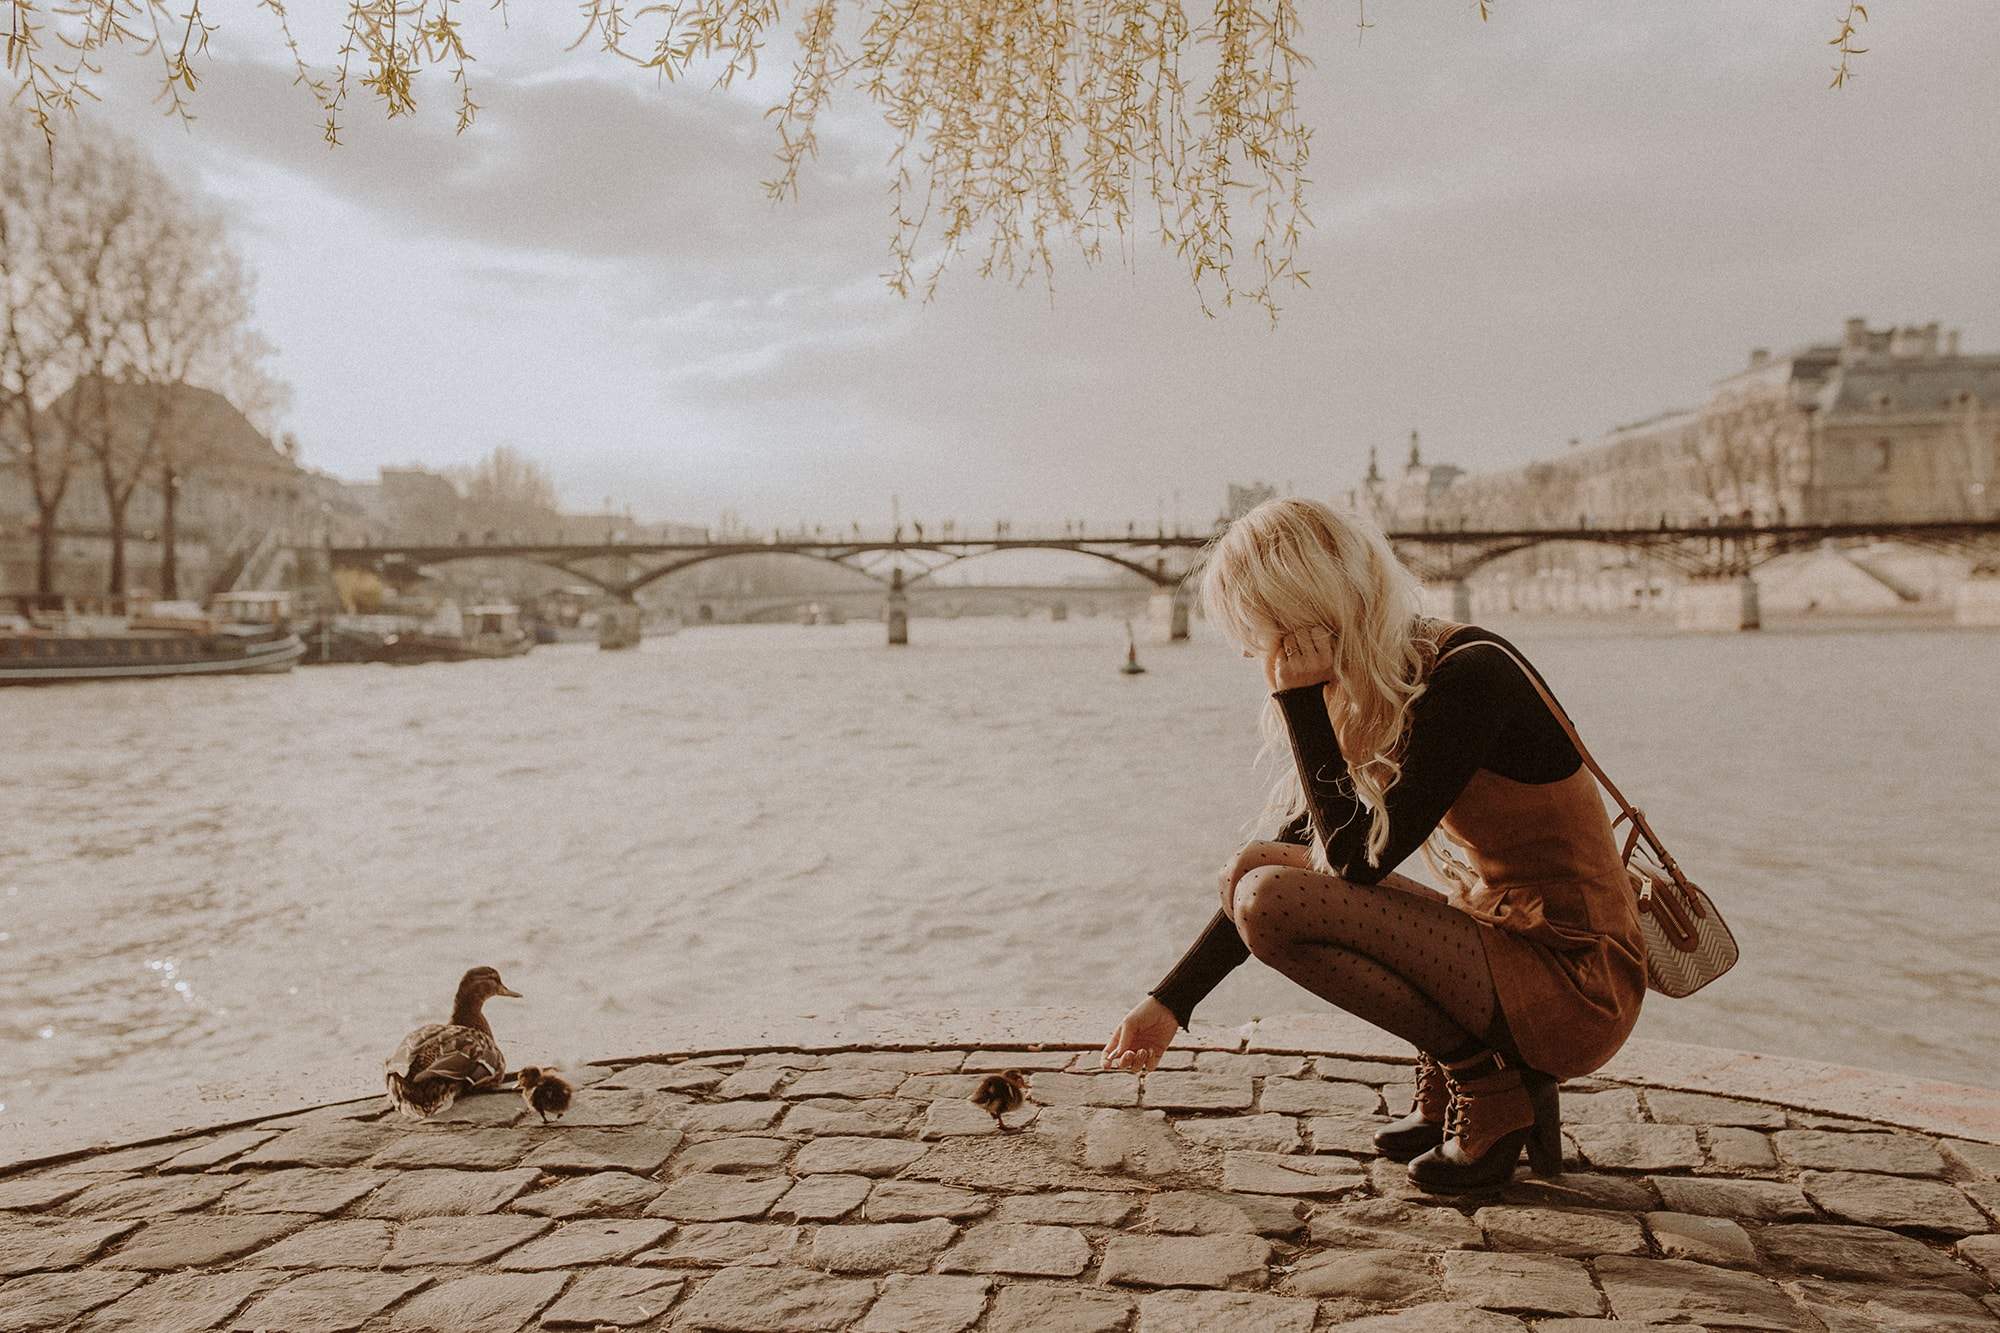 Sarah Loven with baby ducks in Paris